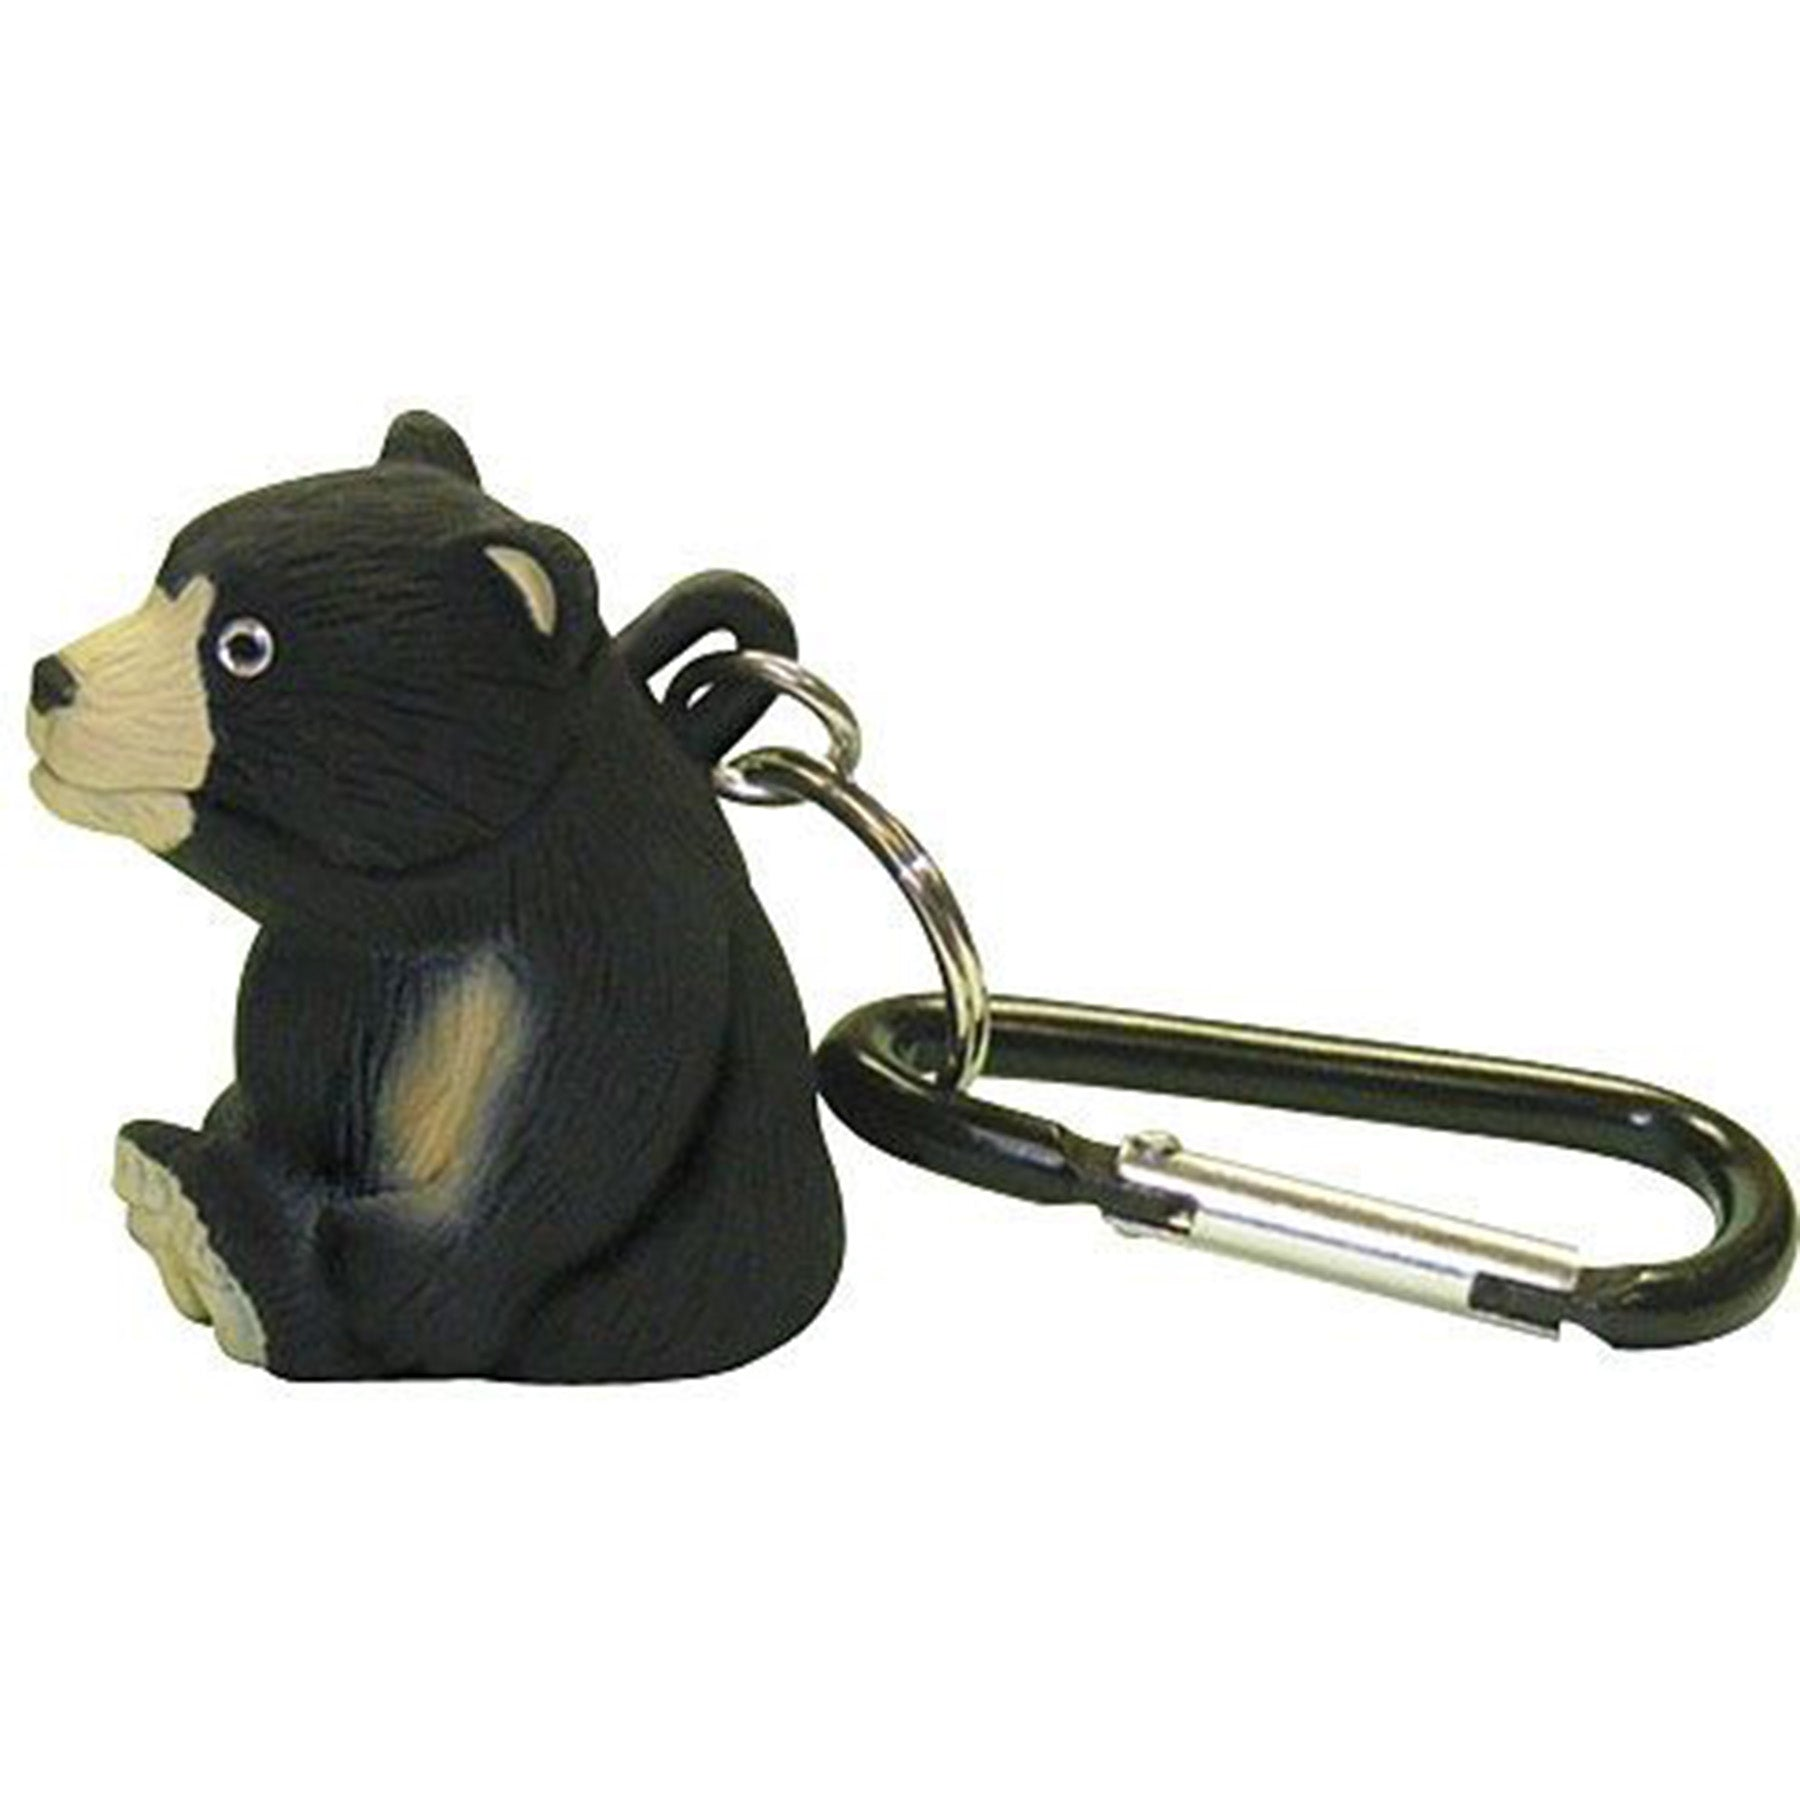 a bear shaped flashlight with attached carabiner